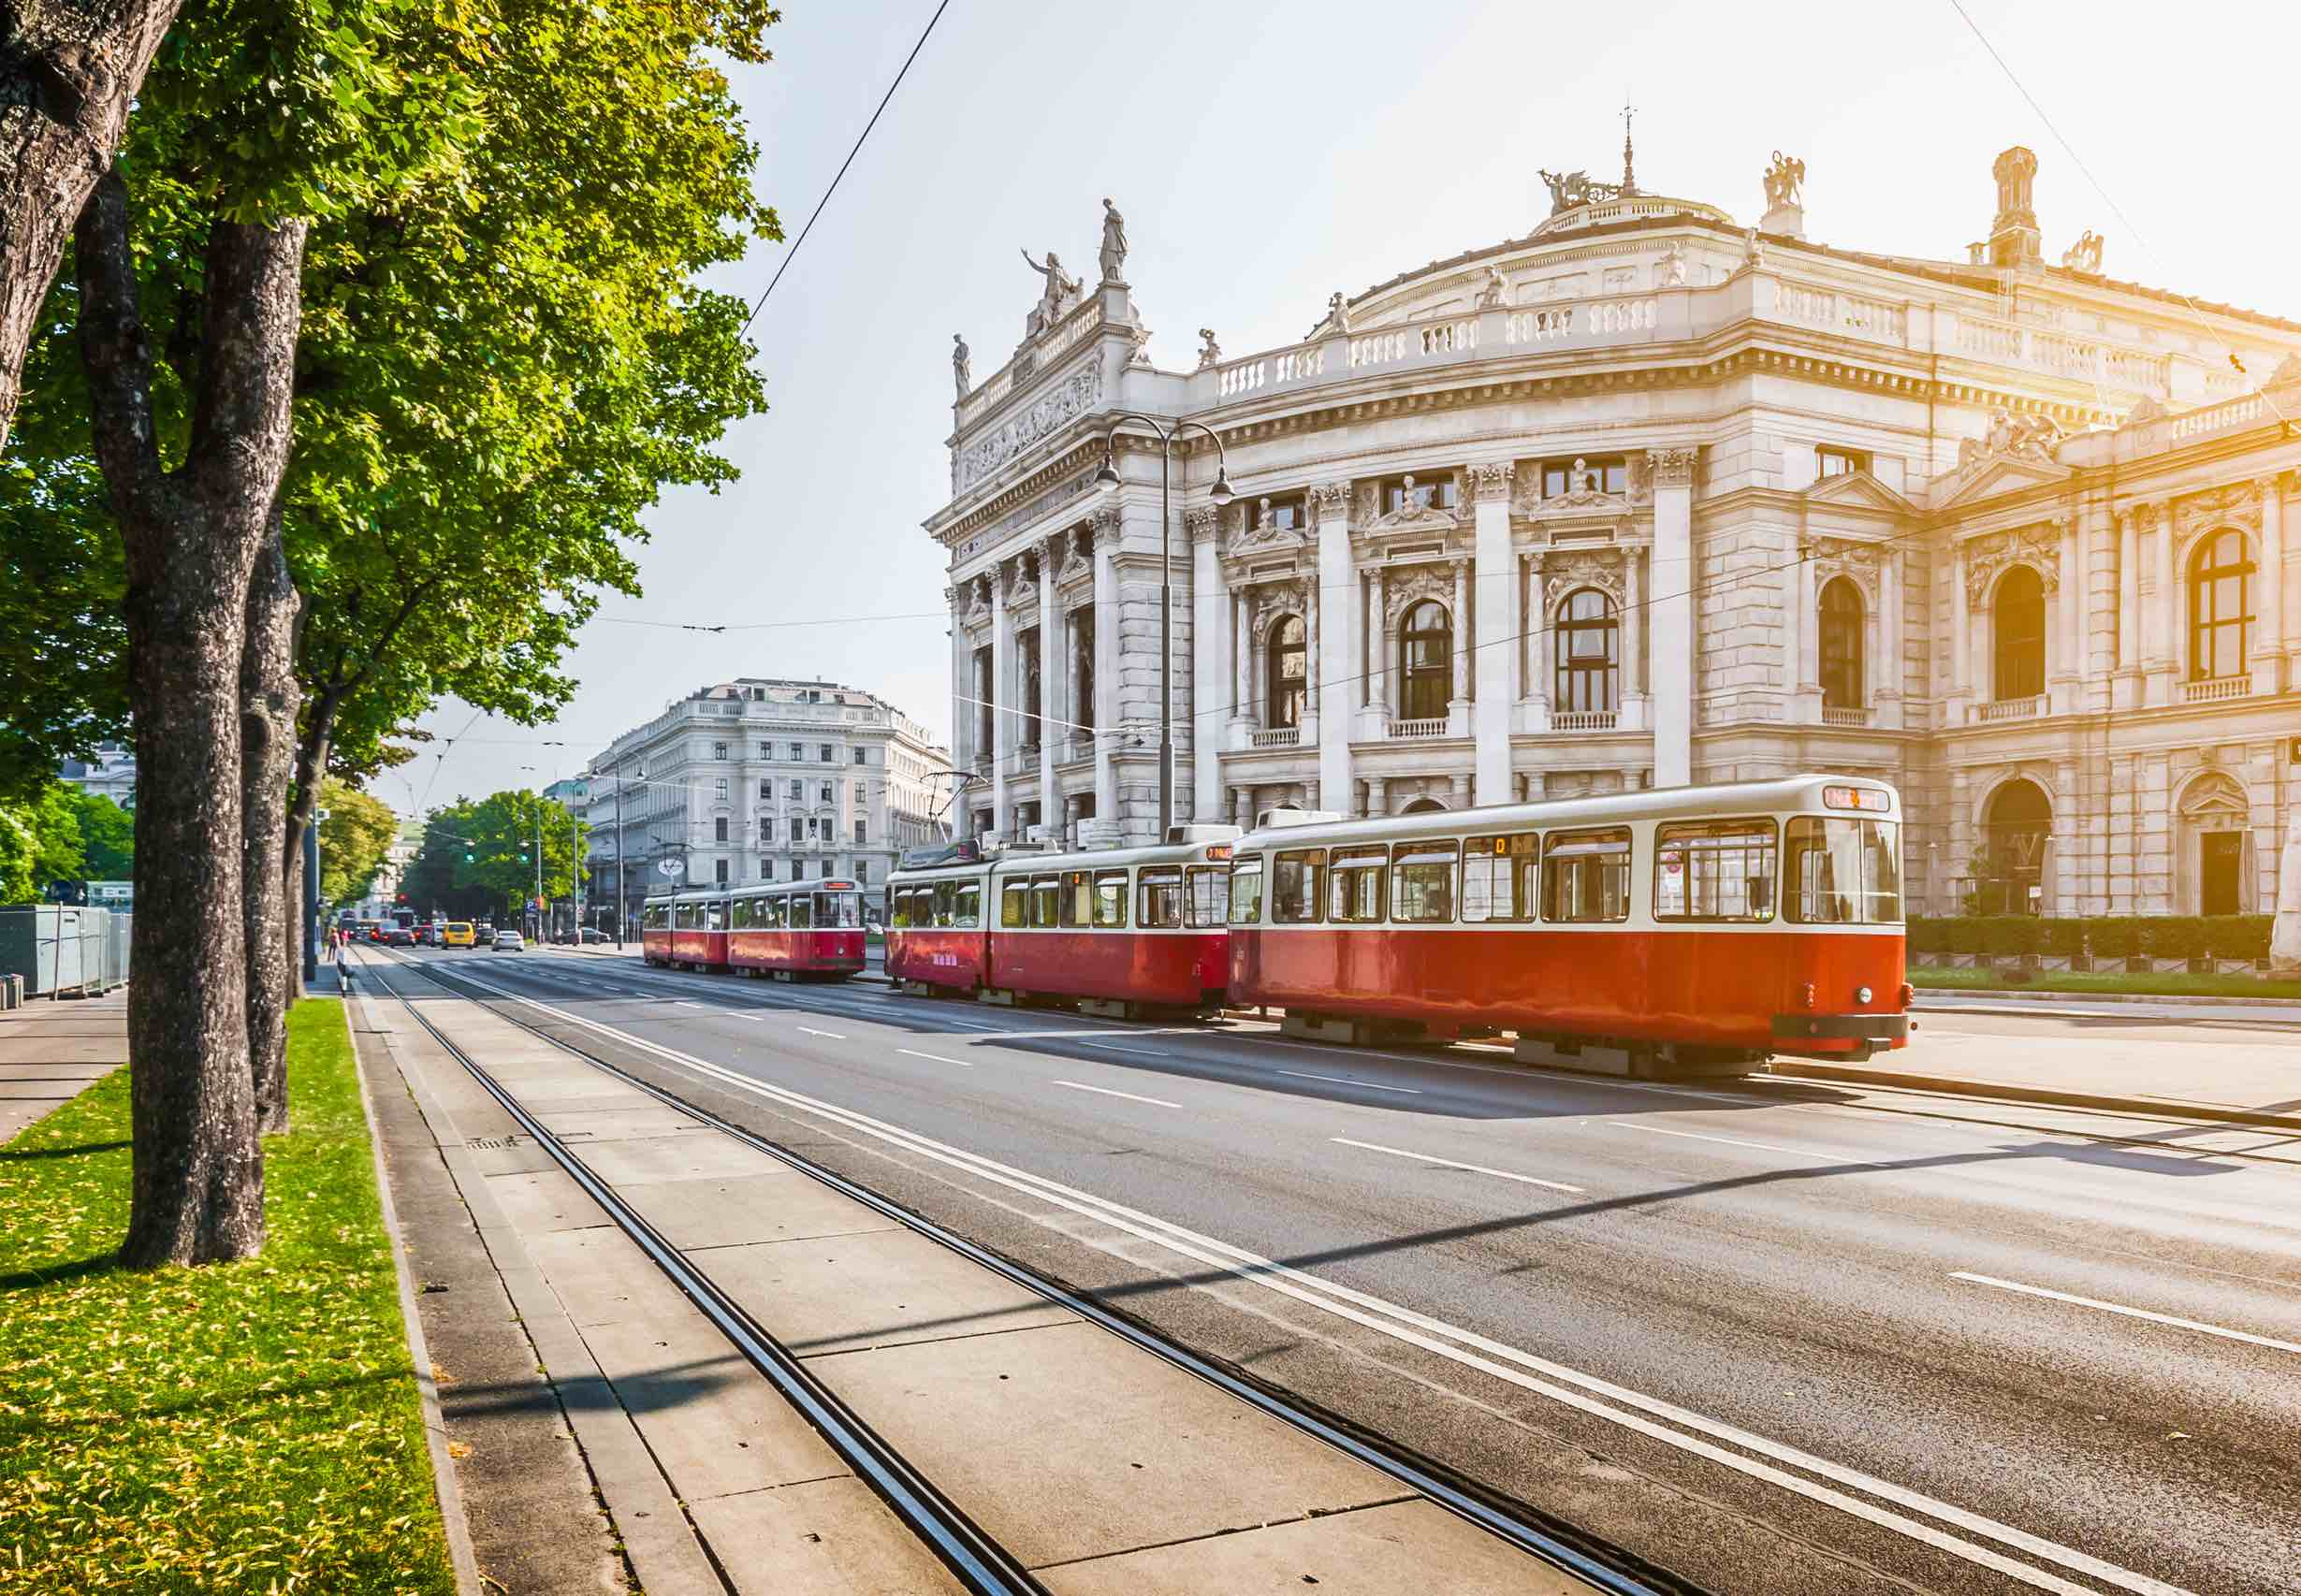 48 Hours In Vienna: Where To Stay, What To Eat And More...